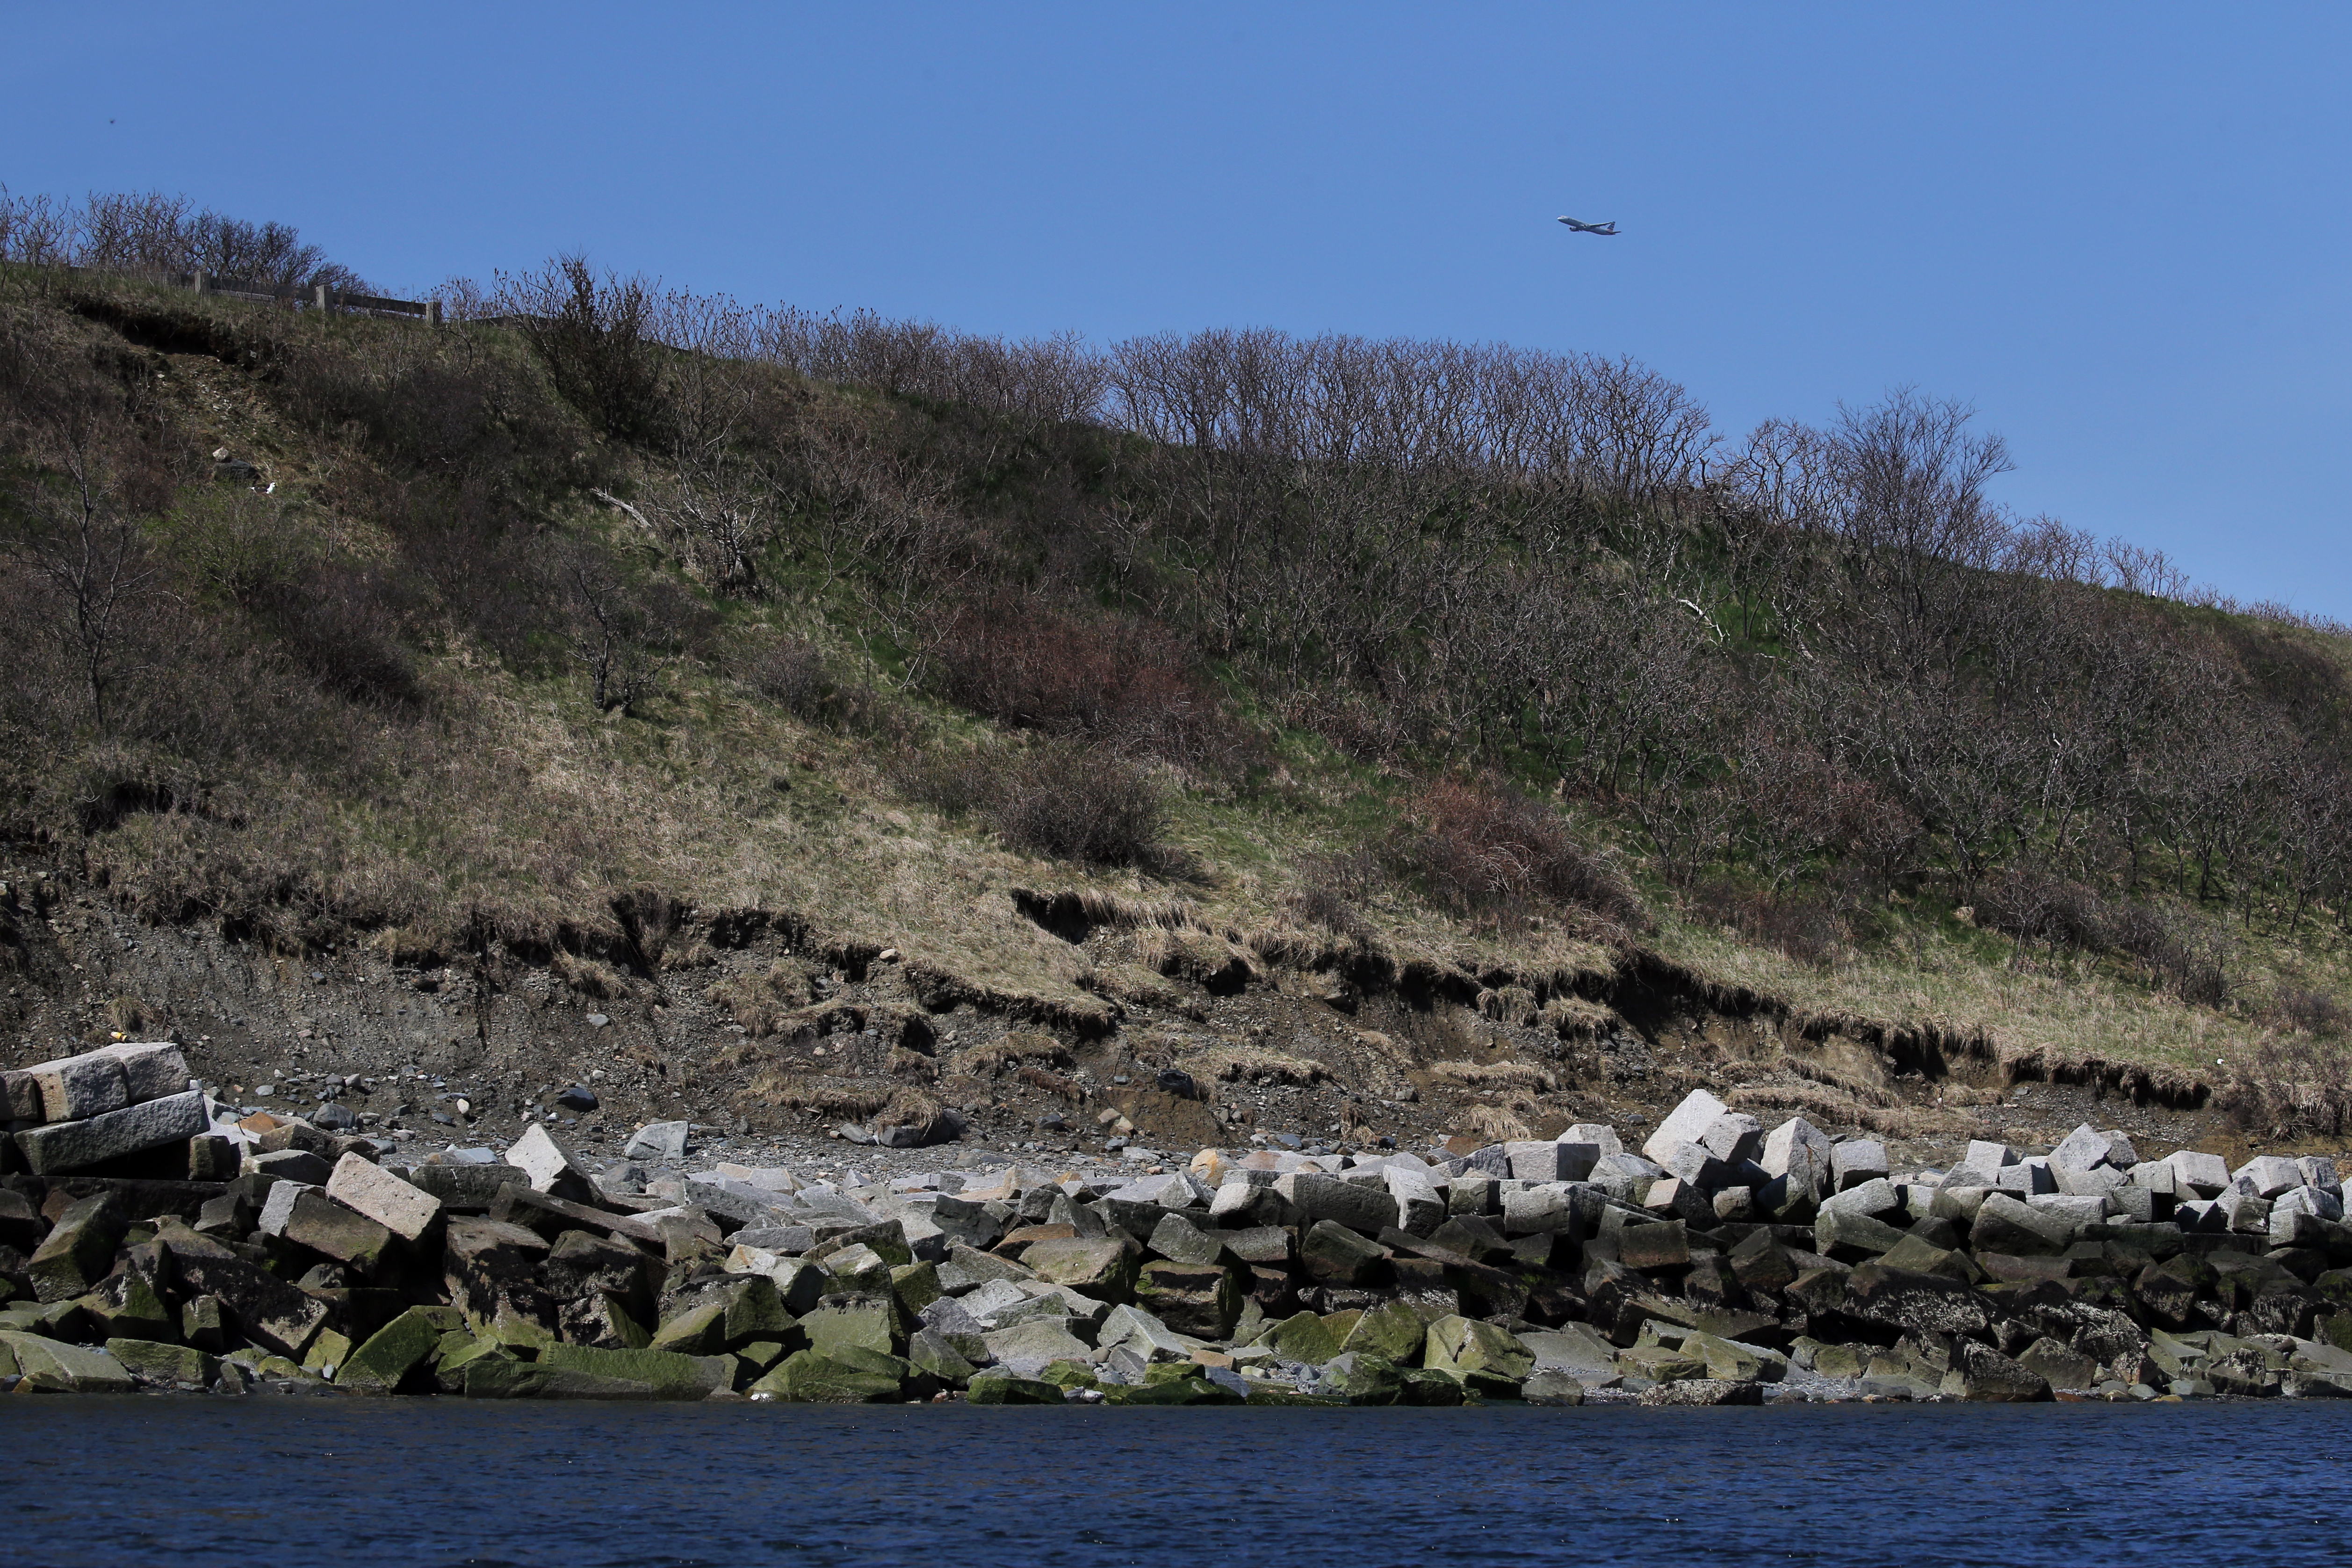 Damaged and eroded seawall on Gallop's Island in Boston Harbor.